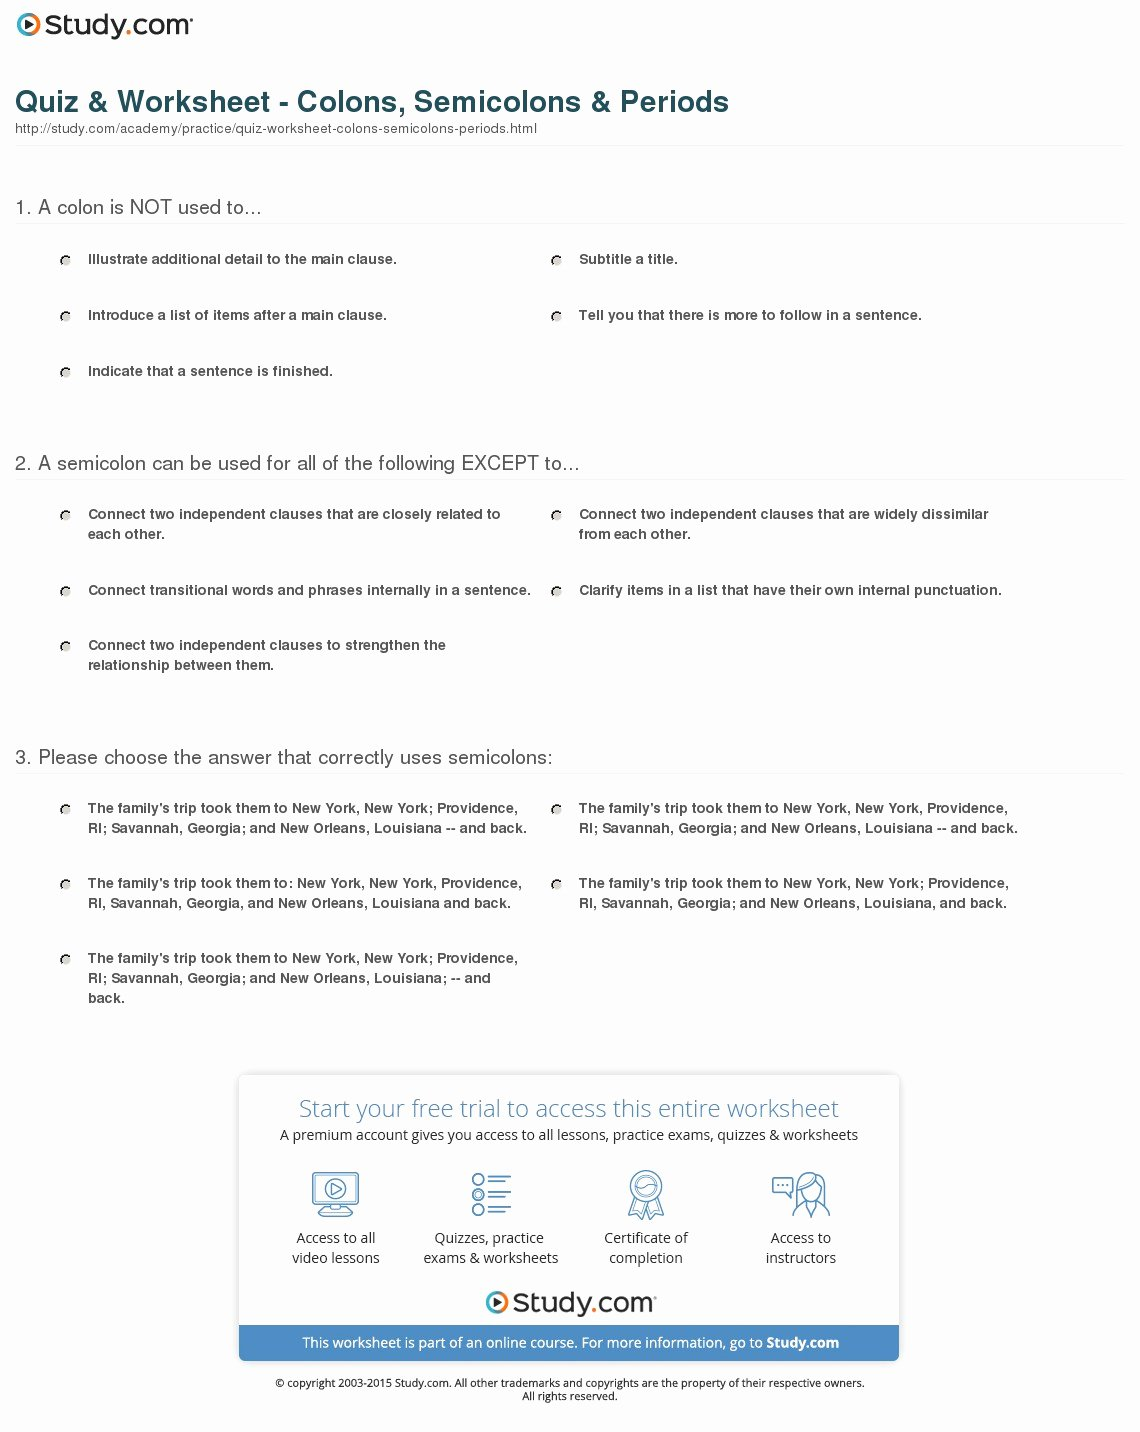 Semicolon and Colon Worksheet Fresh Quiz & Worksheet Colons Semicolons & Periods